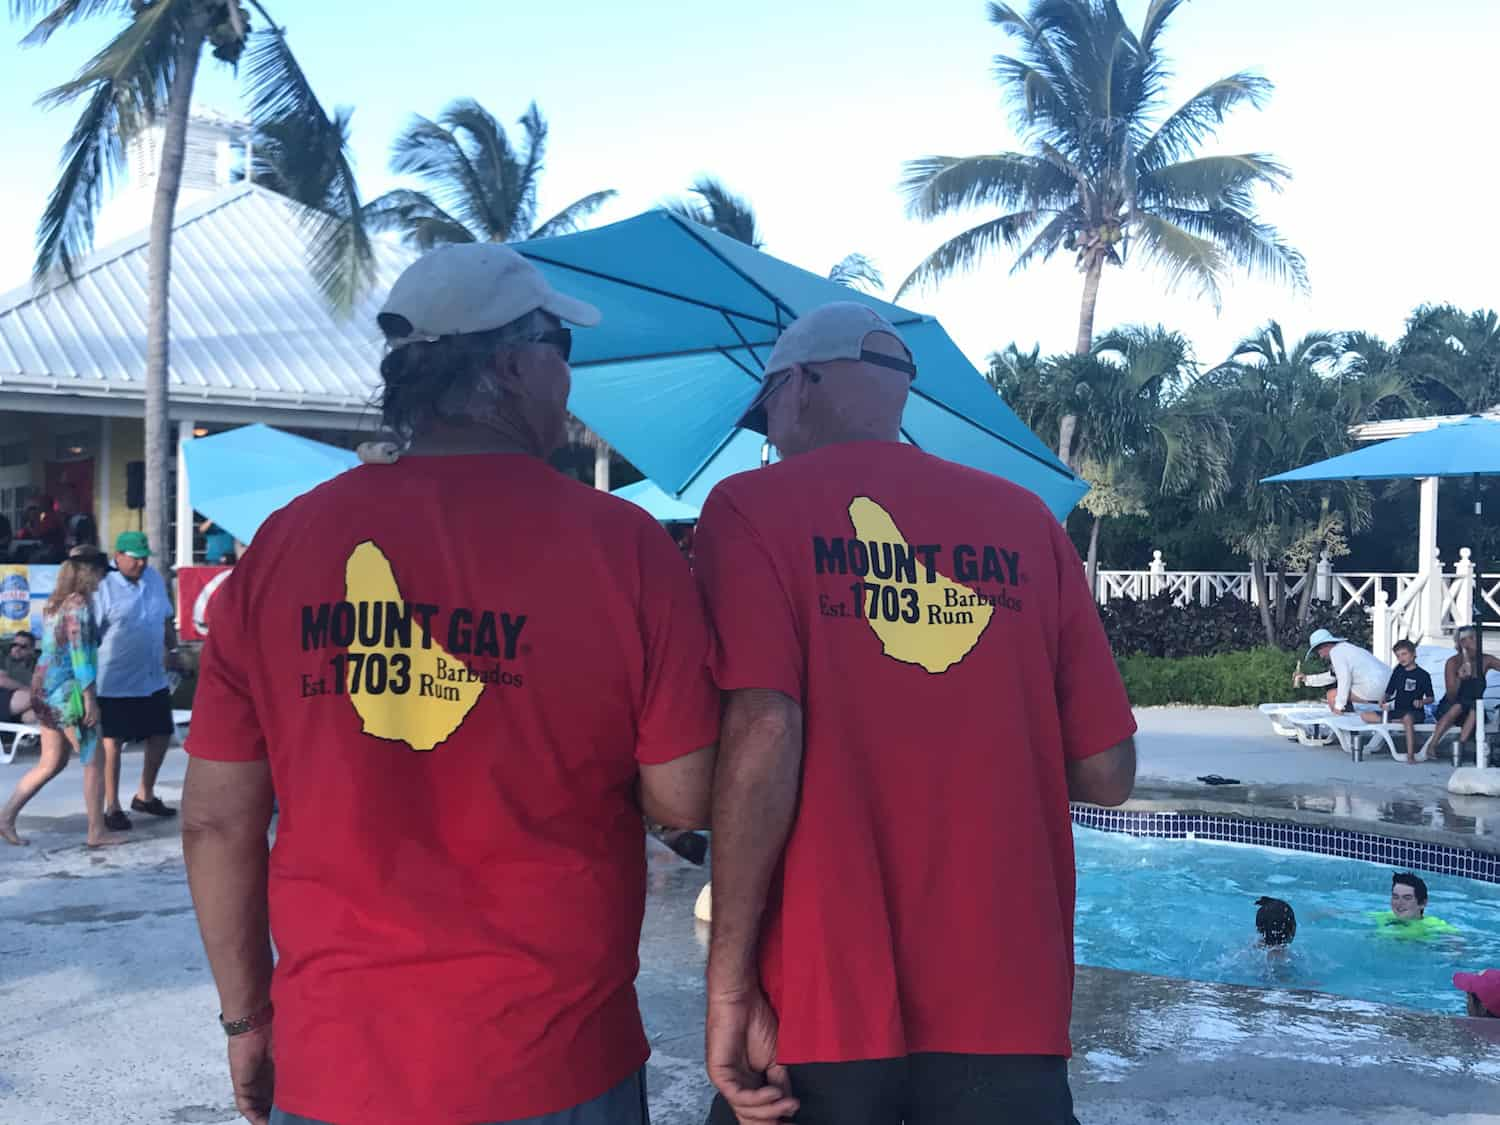 Abacos mountgay rum treated abaco sailing racers to free rum